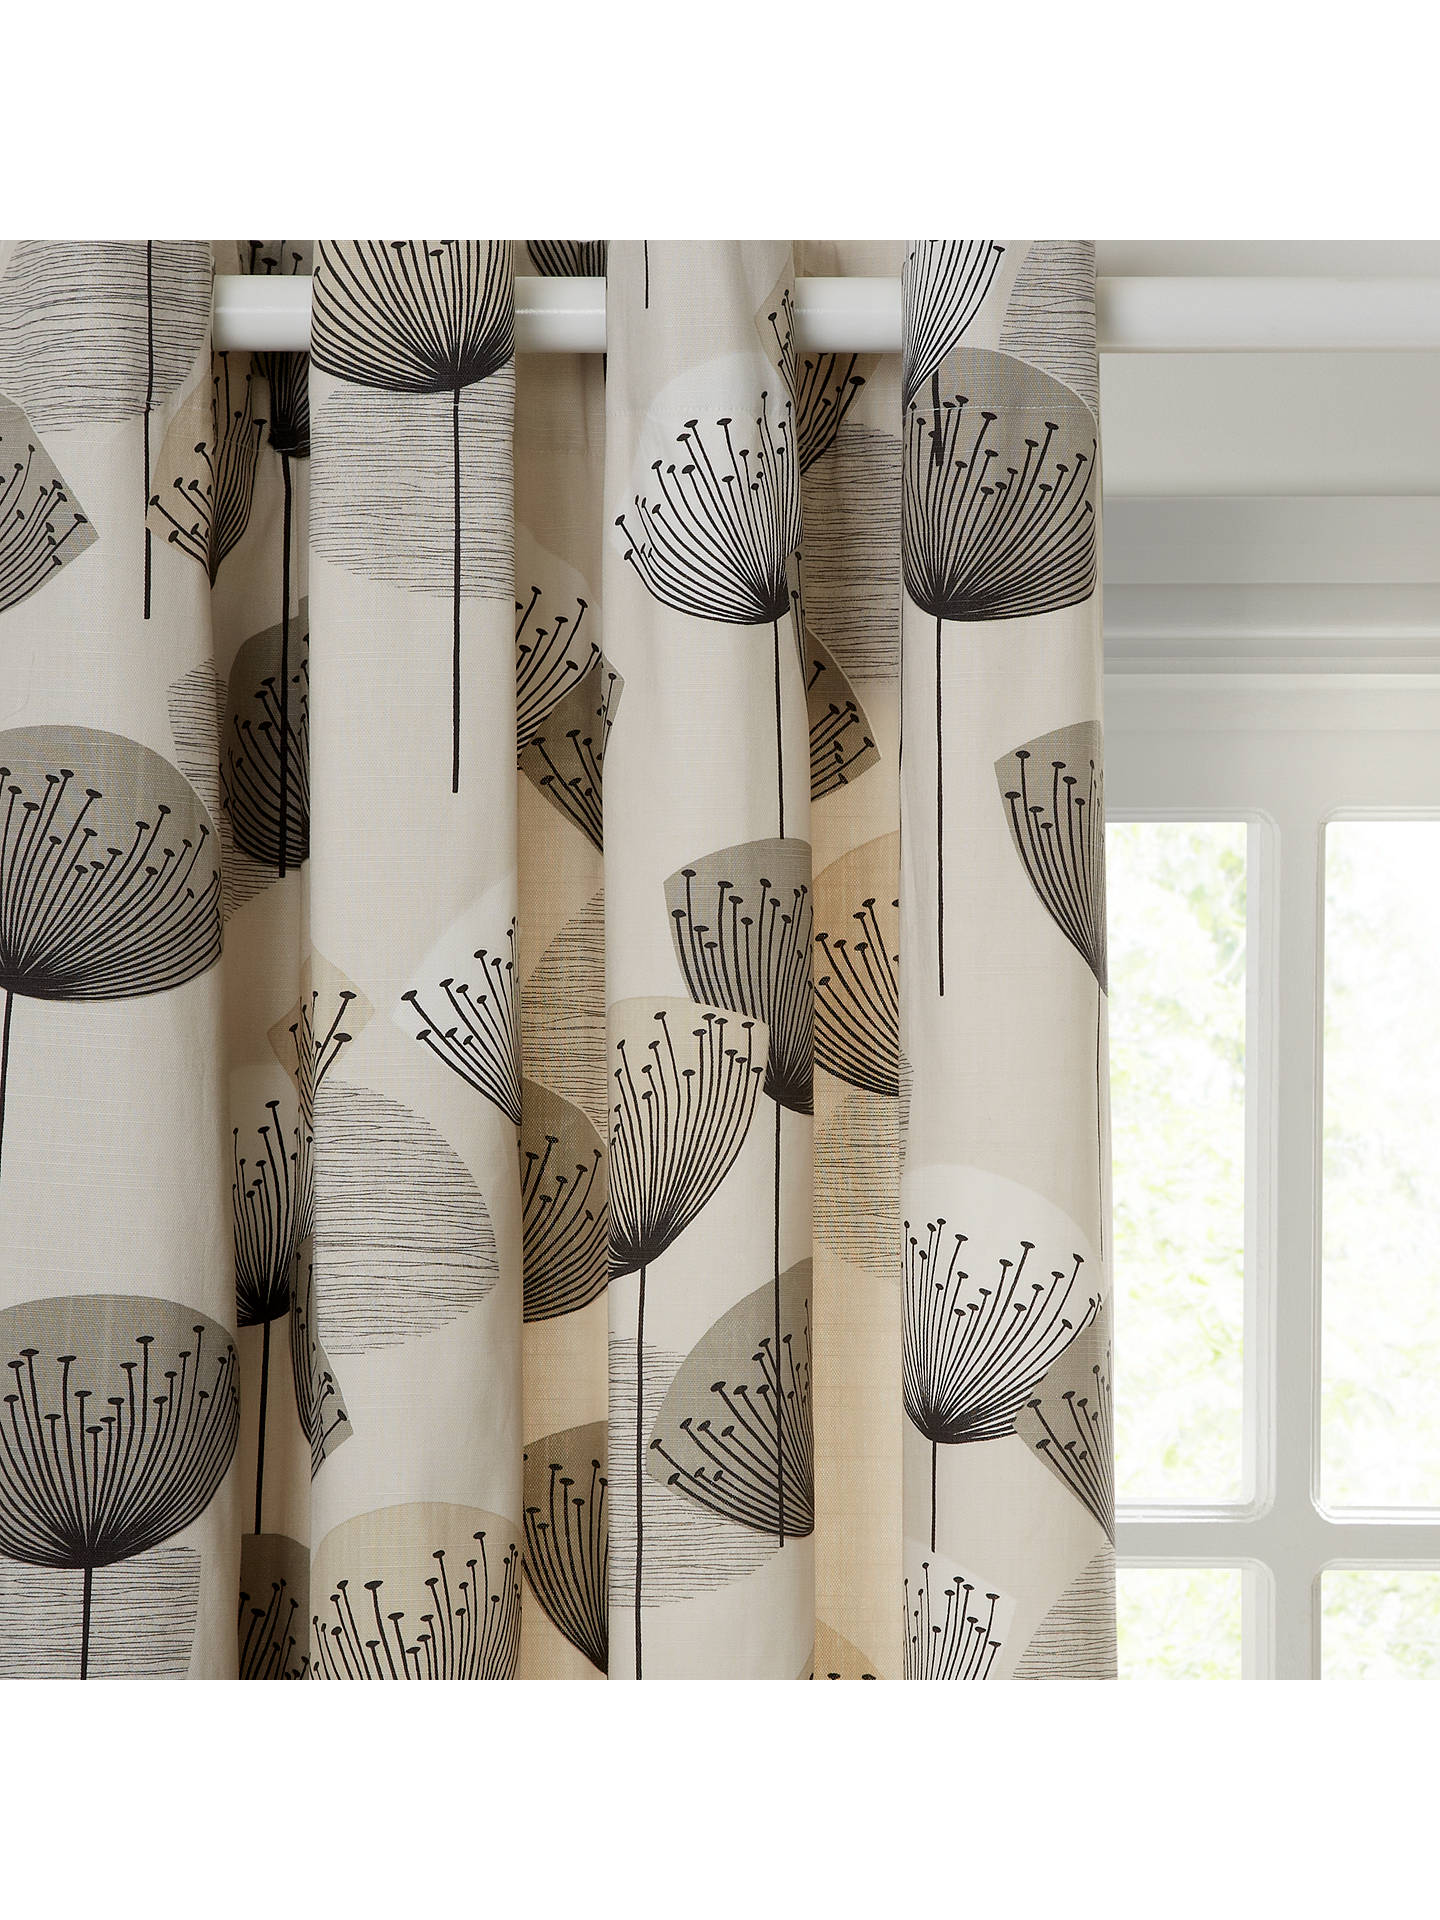 Sanderson Dandelion Clocks Pair Lined Eyelet Curtains